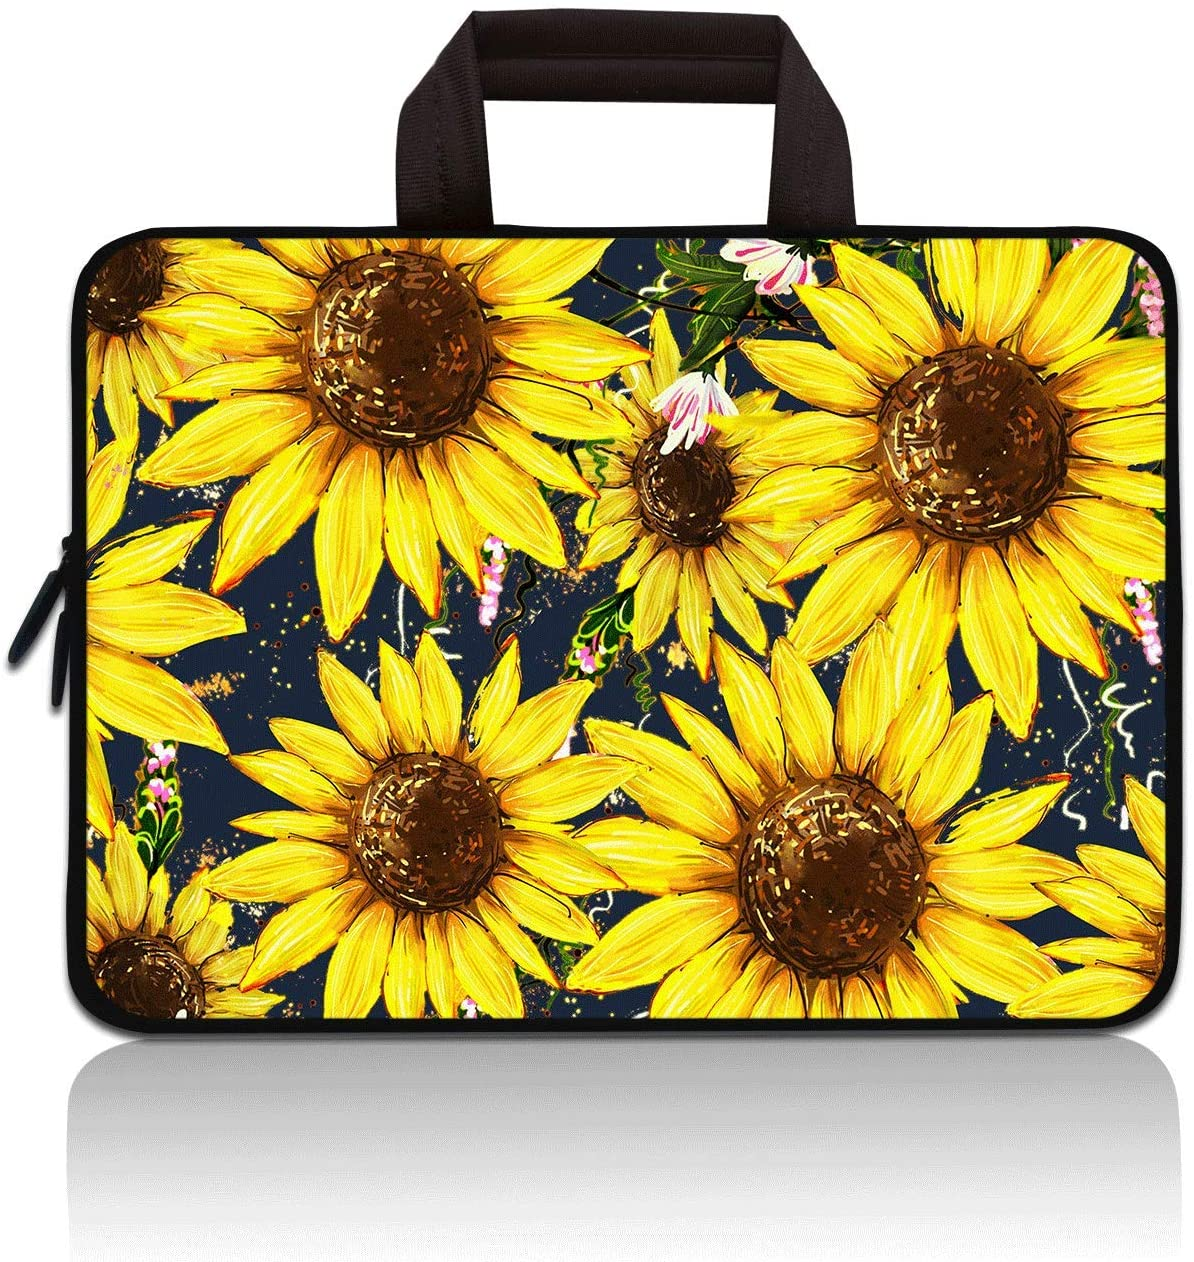 RUYIDAY 11 11.6 12 12.1 12.5 inch Laptop Carrying Bag Chromebook Case Notebook Ultrabook Bag Tablet Cover Neoprene Sleeve Fit Apple MacBook Air Samsung Acer HP DELL Lenovo Asus (Sunflower)